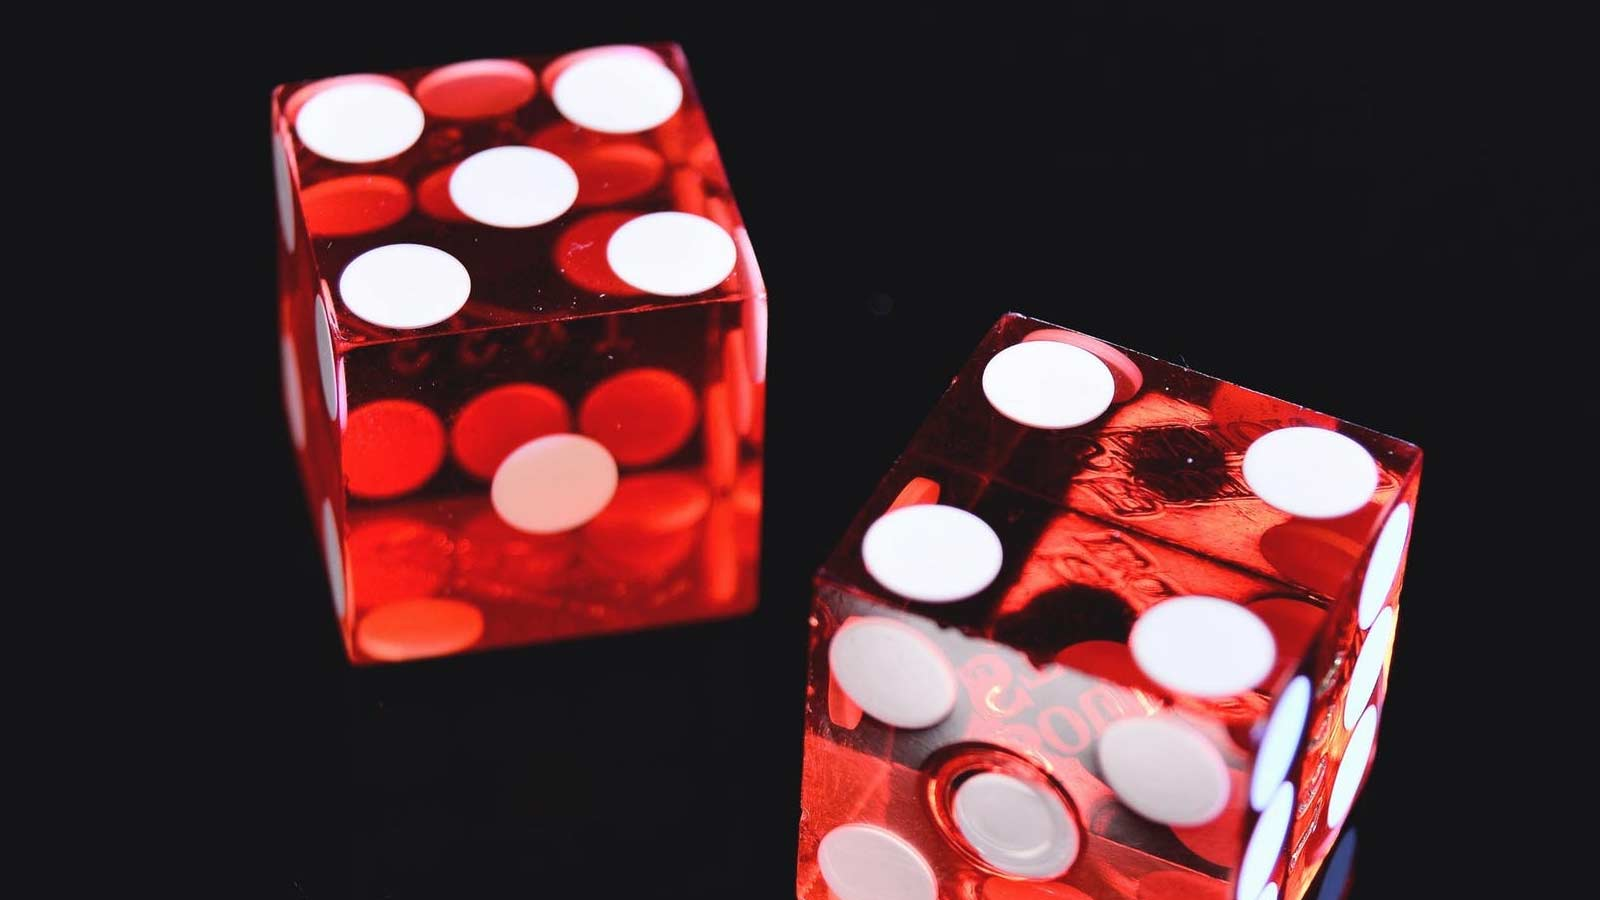 Two red dice against a black background